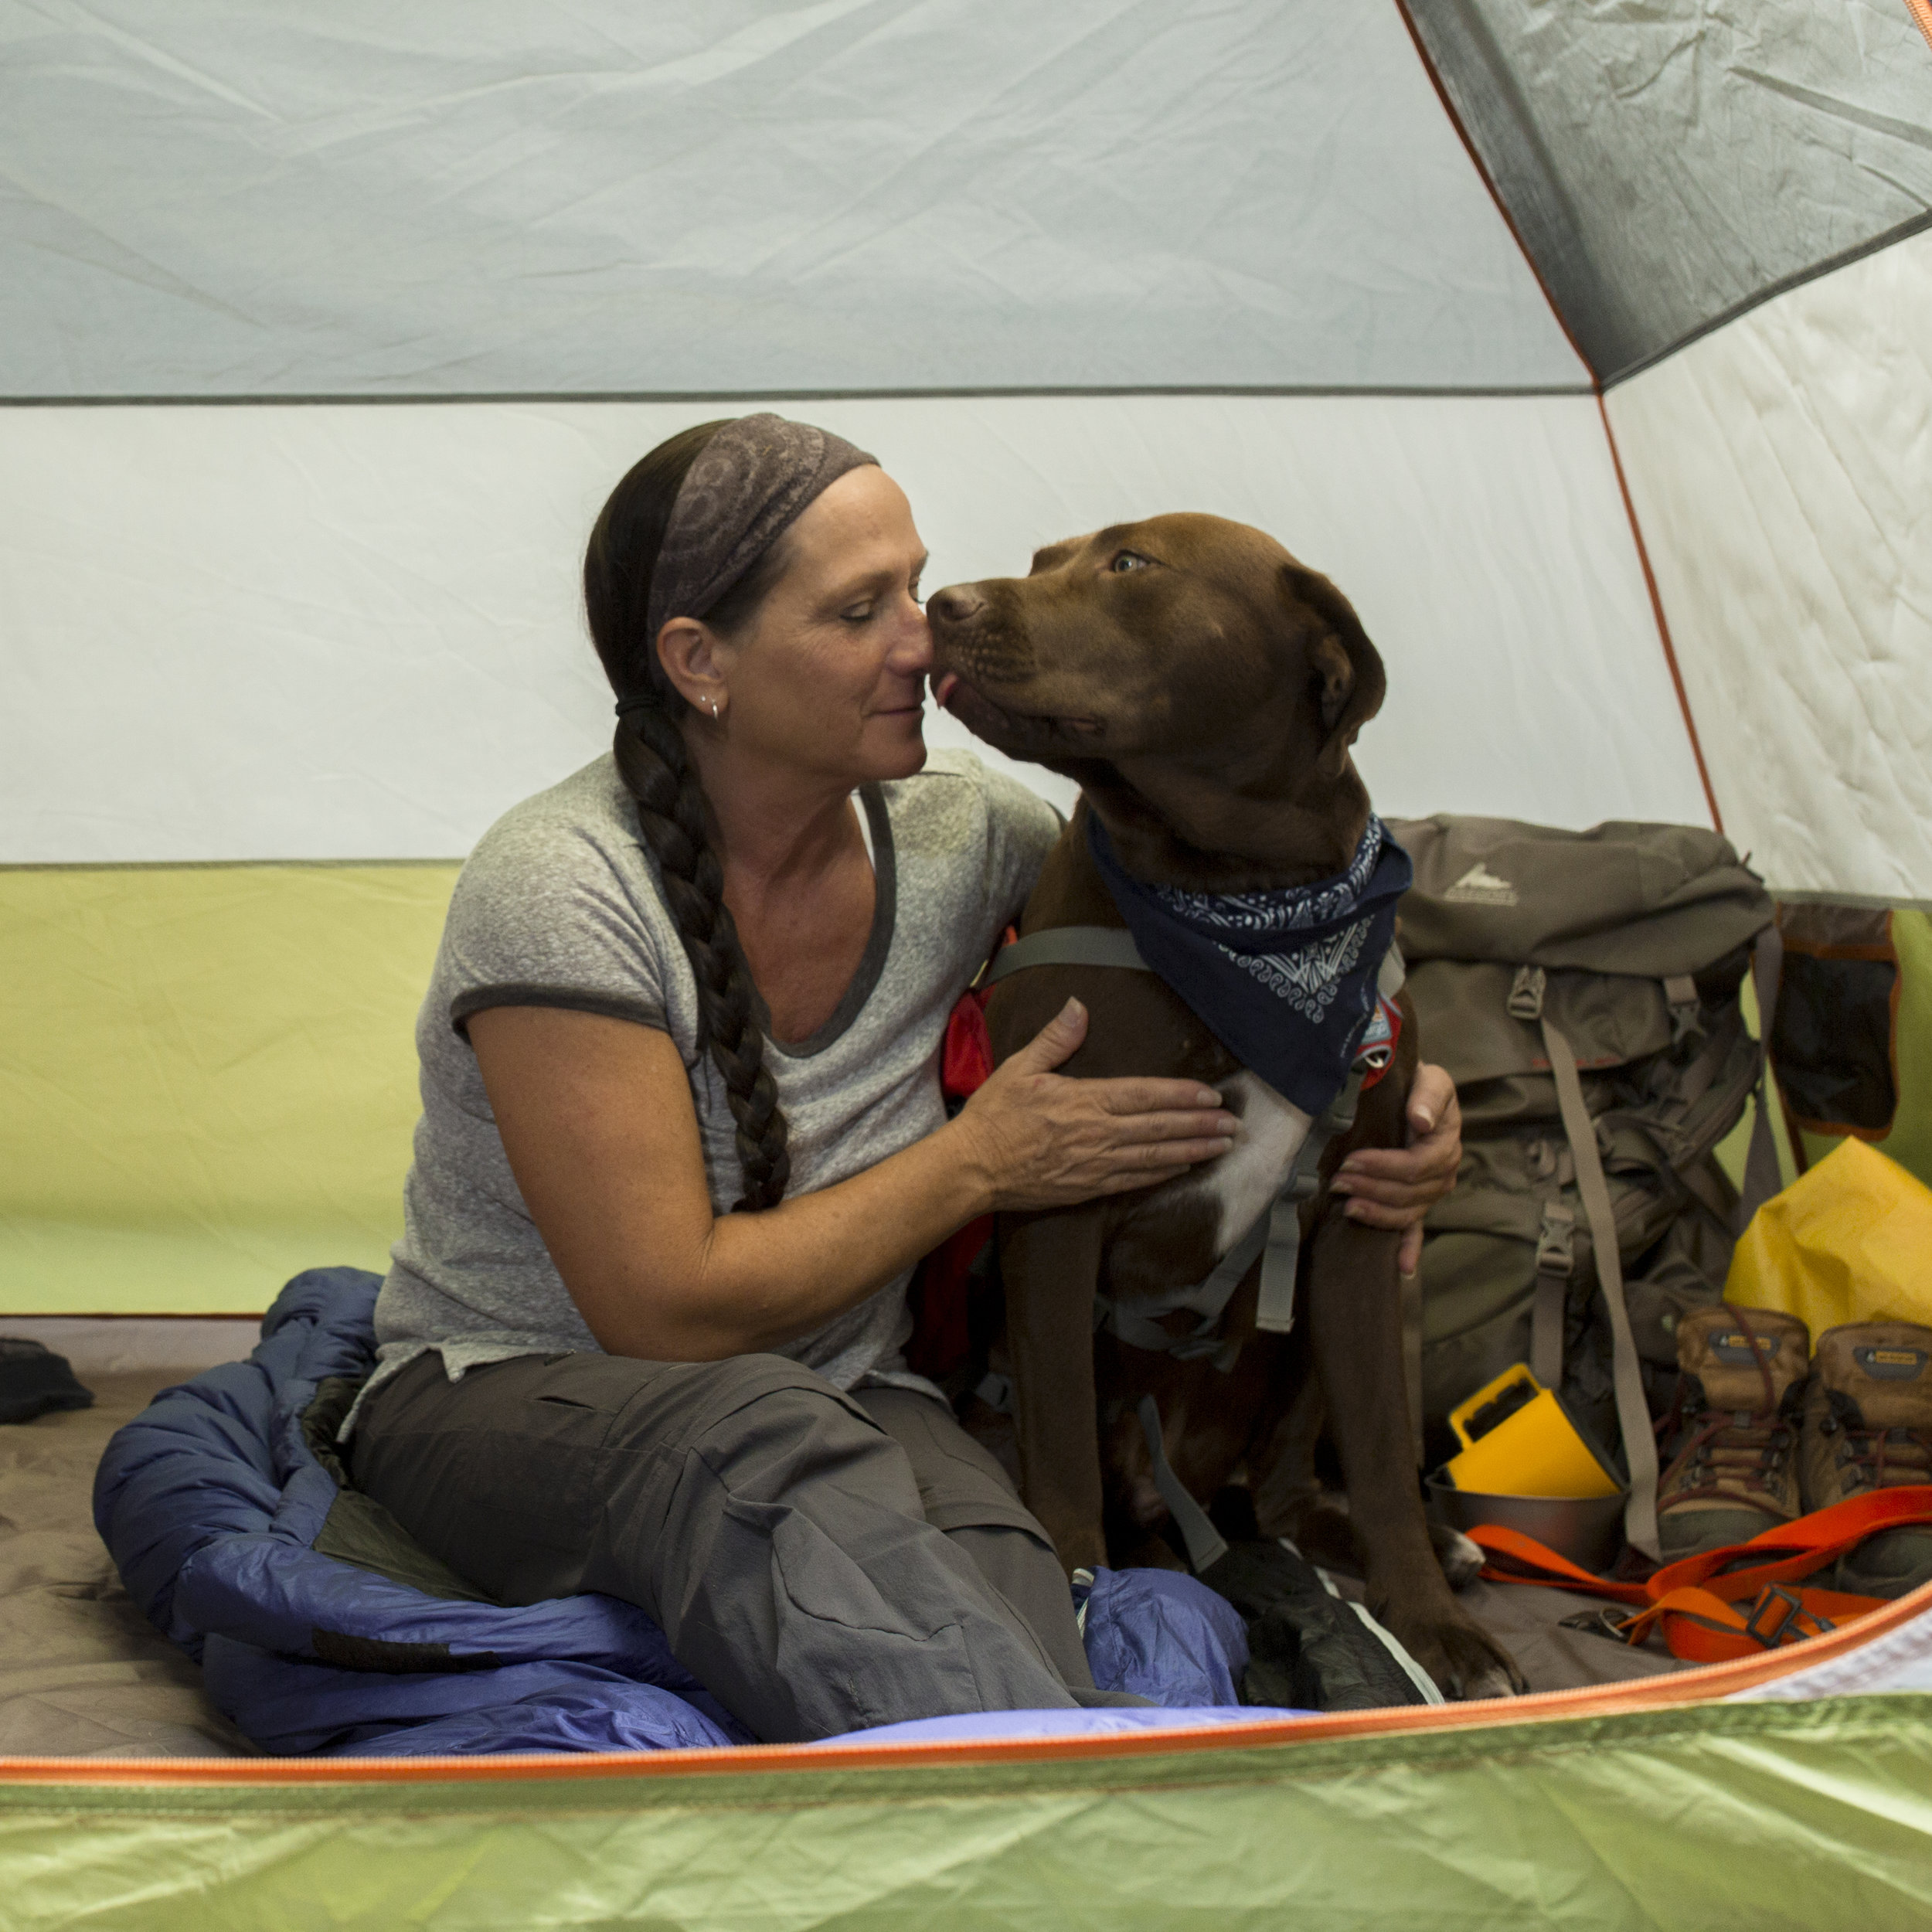 Woman and Dog Camping